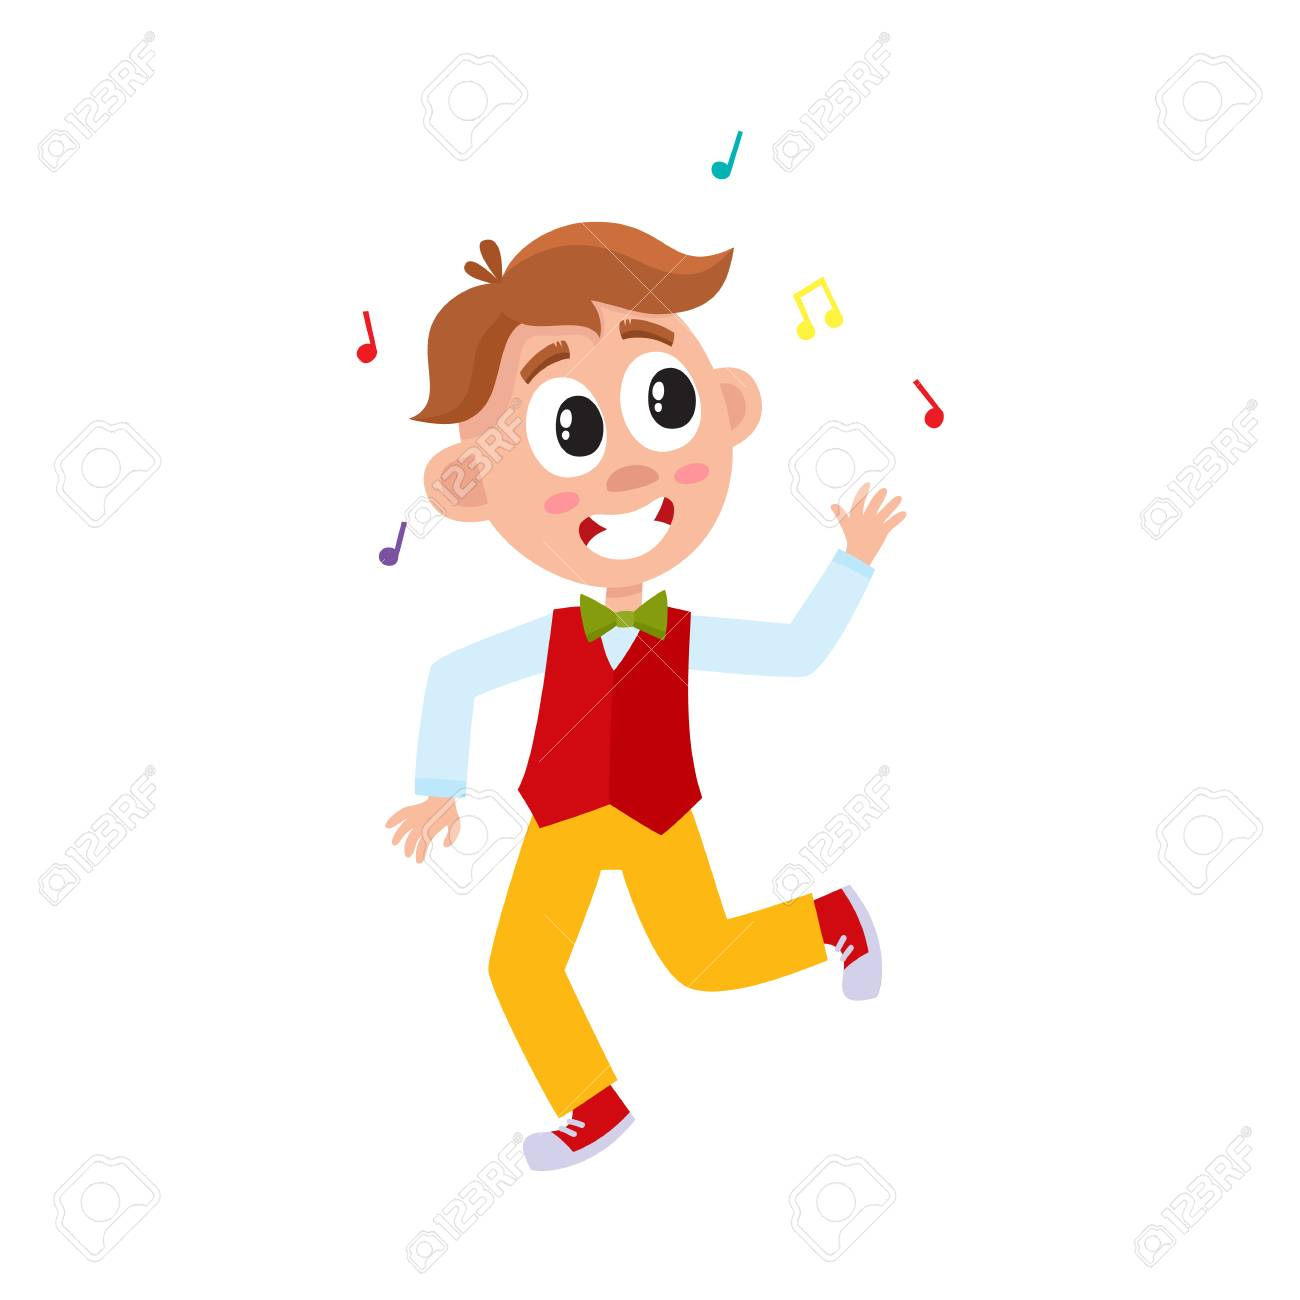 Vector vector flat cartoon boy child dancing alone in red waistcoat throwing music confetti smiling little dancer male character